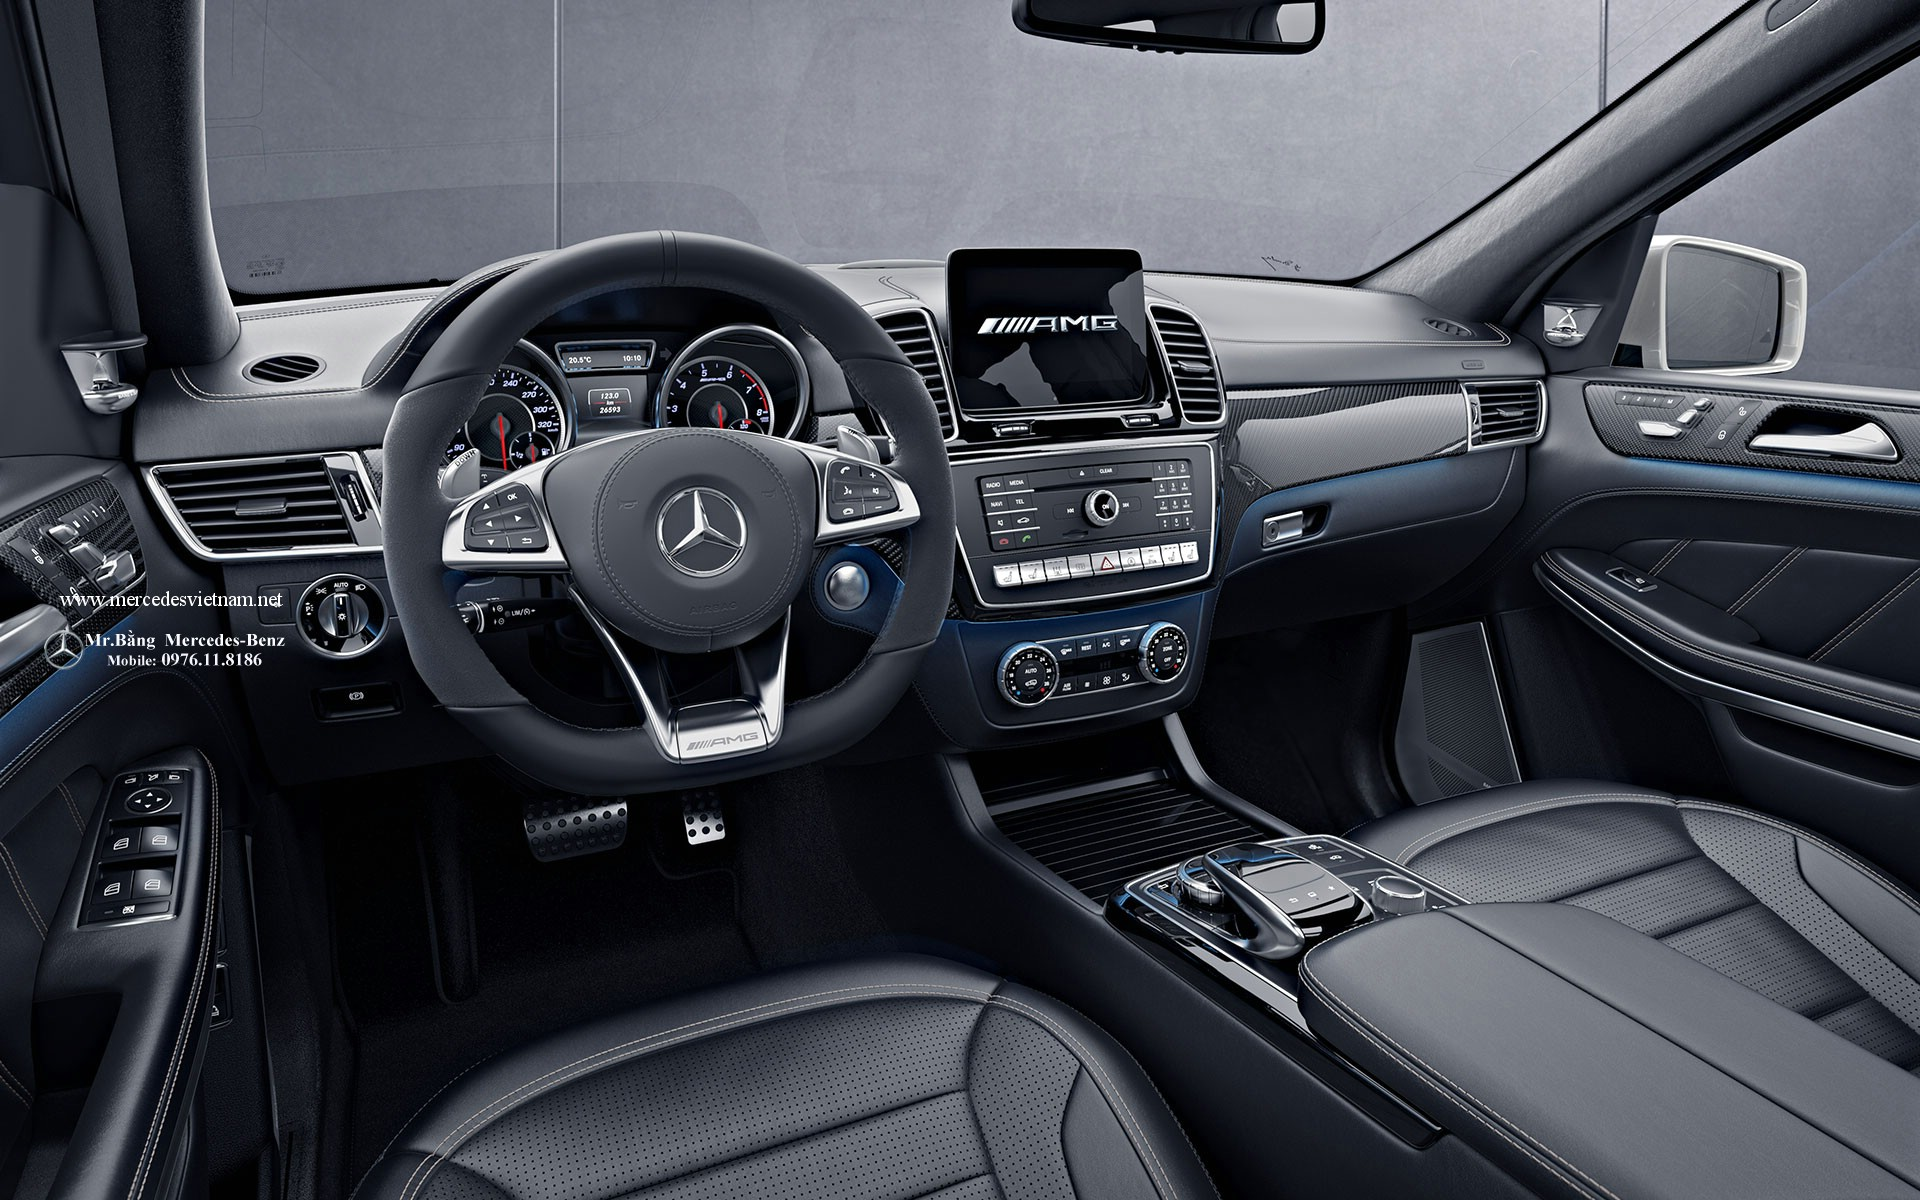 Mercedes AMG GLS 63 4Matic 2016 2017 (2)